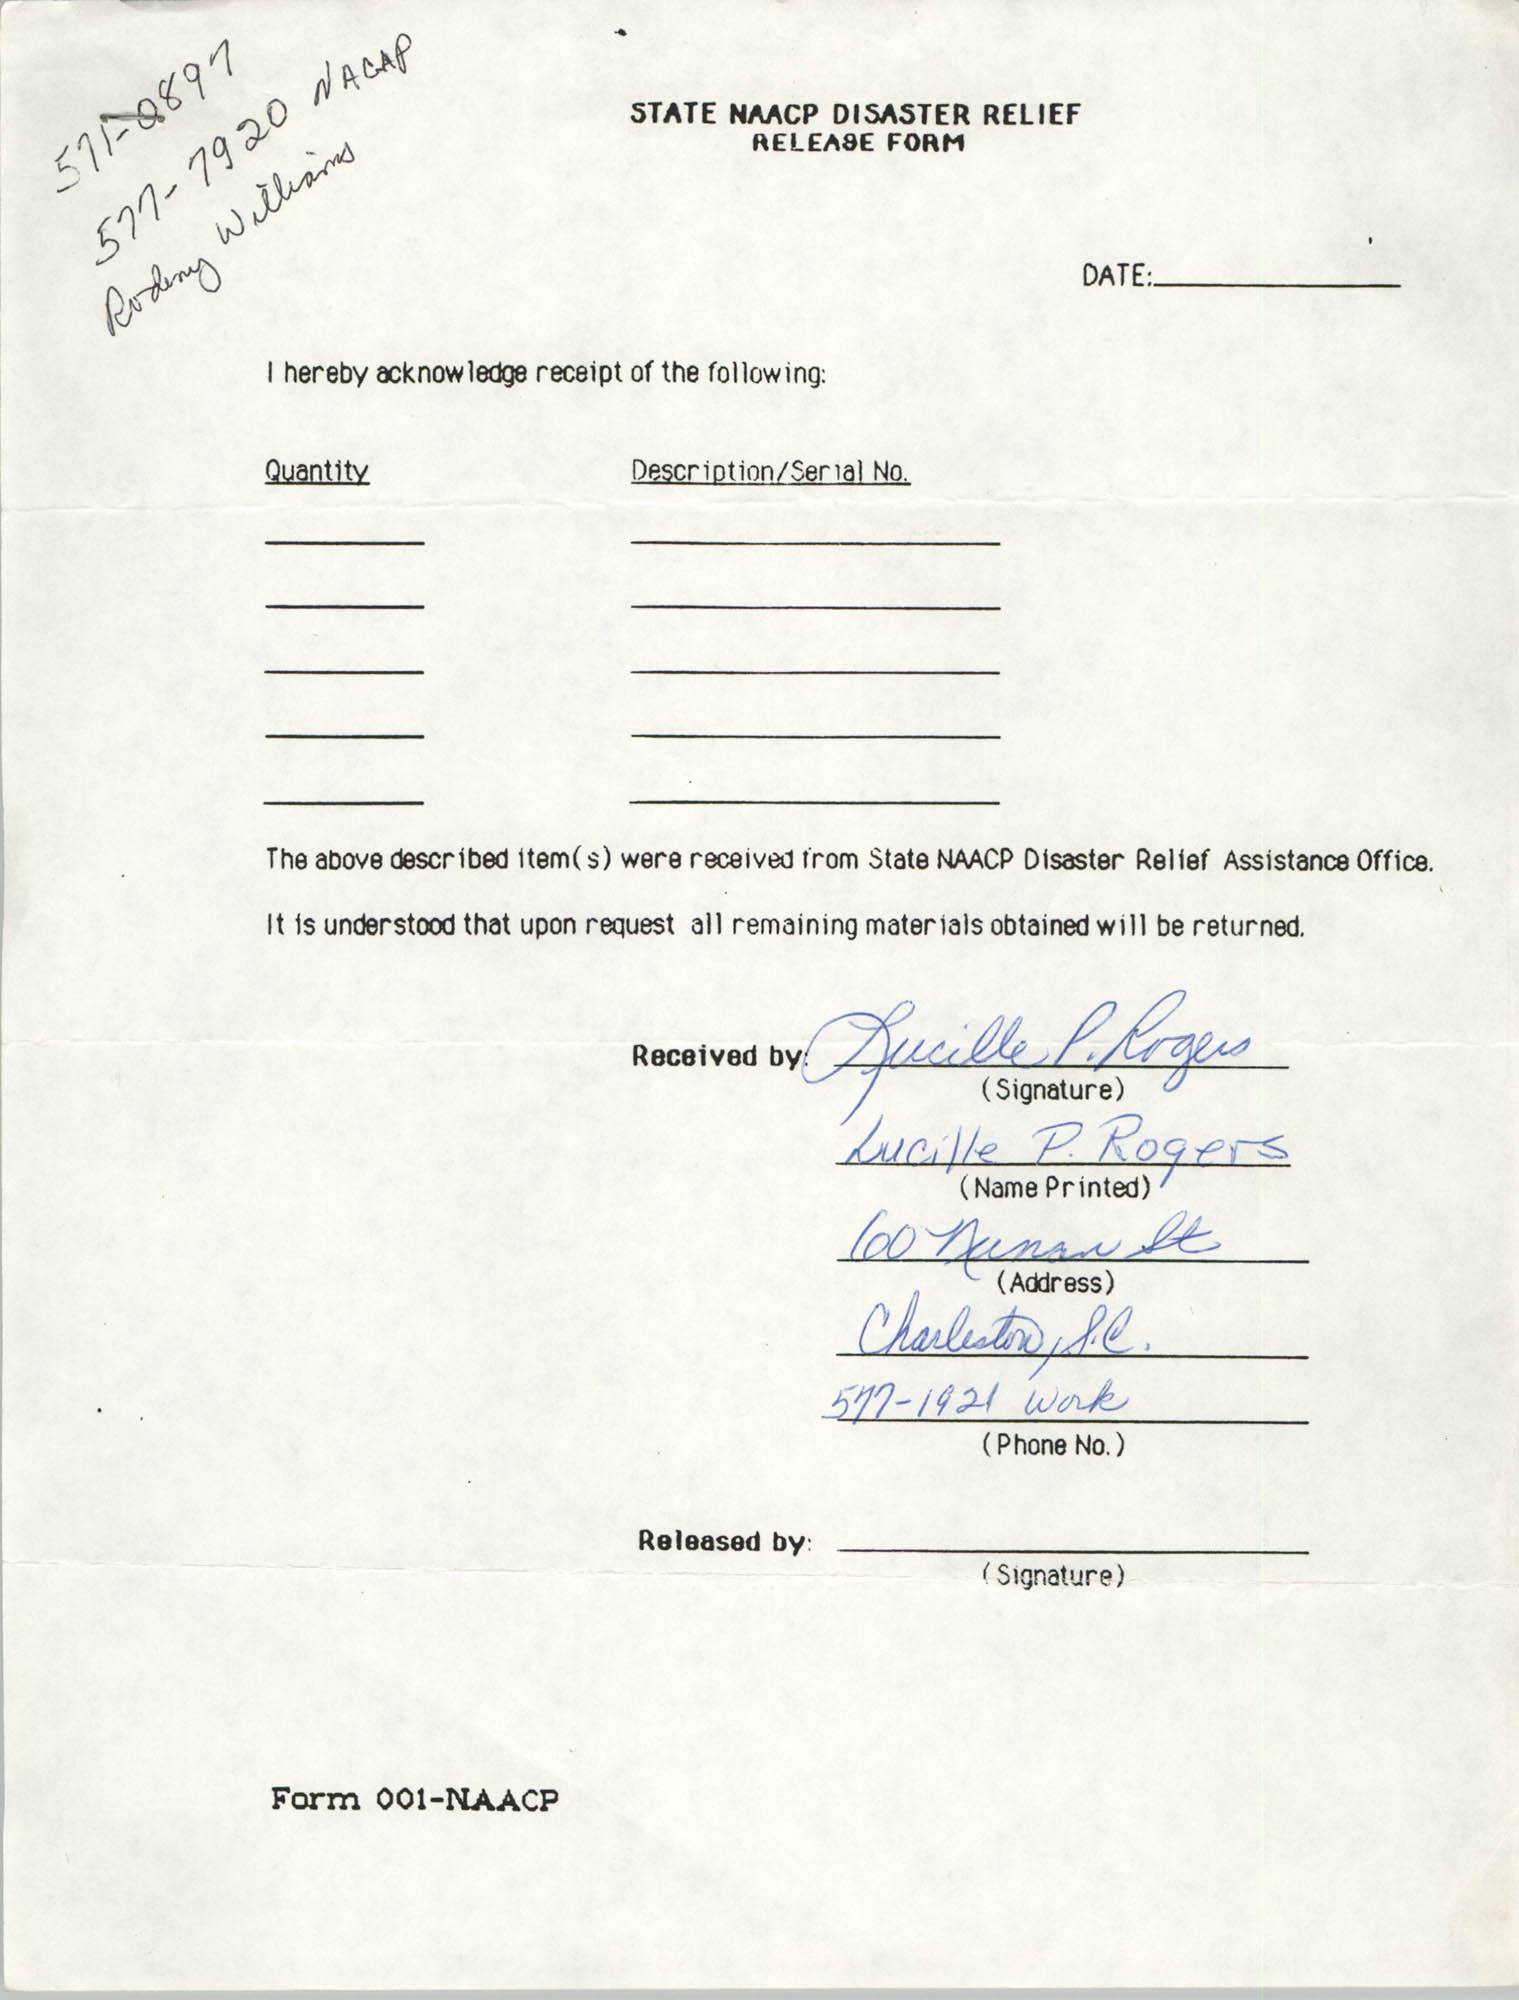 State NAACP Disaster Relief, Hurricane Huge Release Form, 1989, Page 21